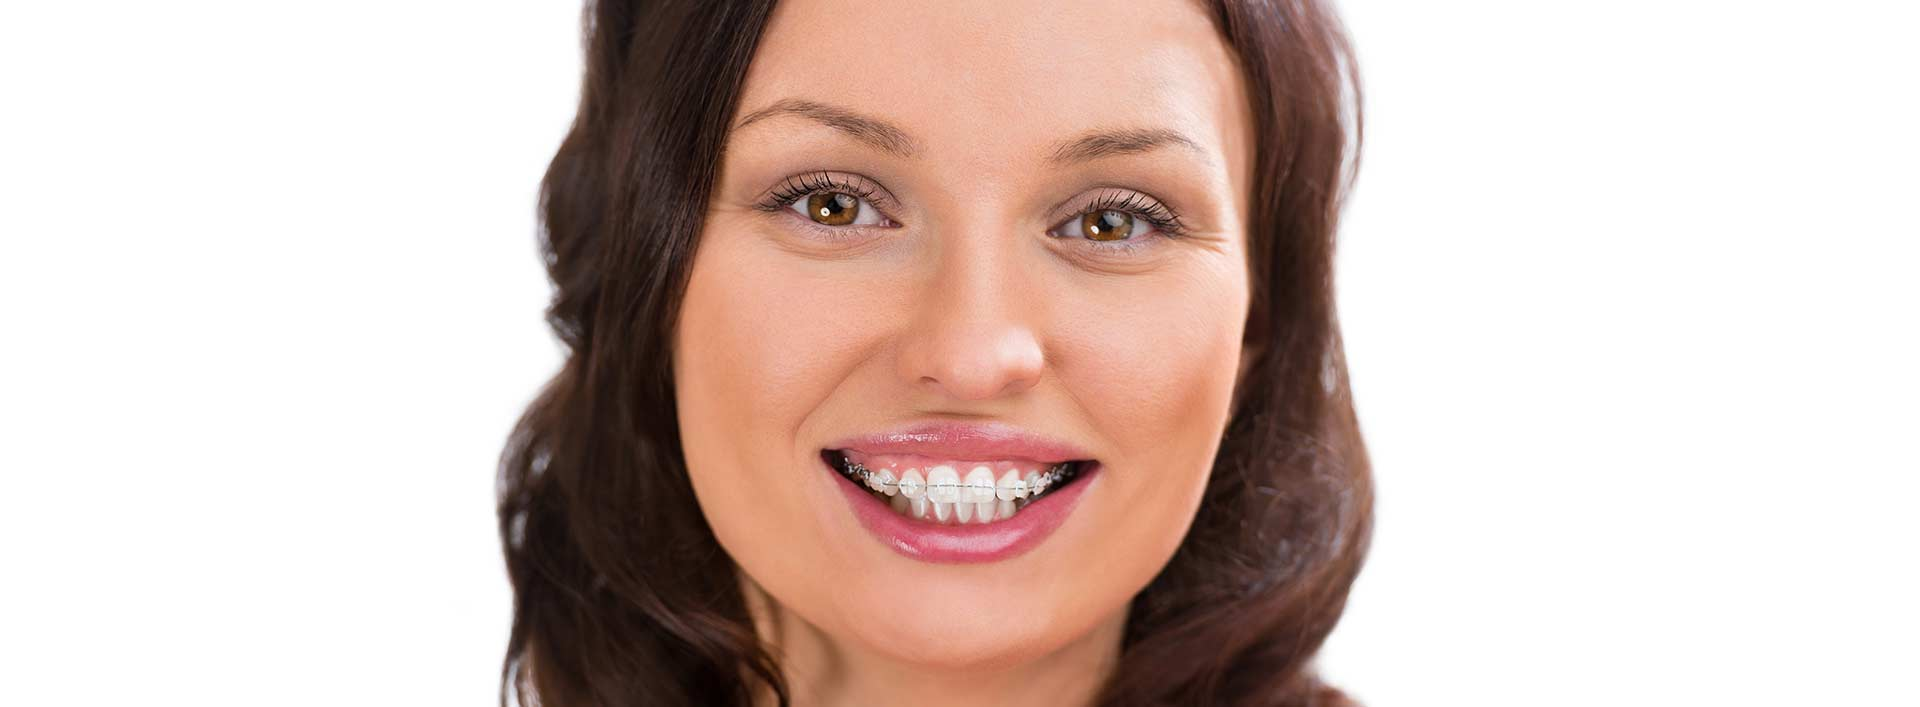 chestermere-station-ortho-adult-braces-banner